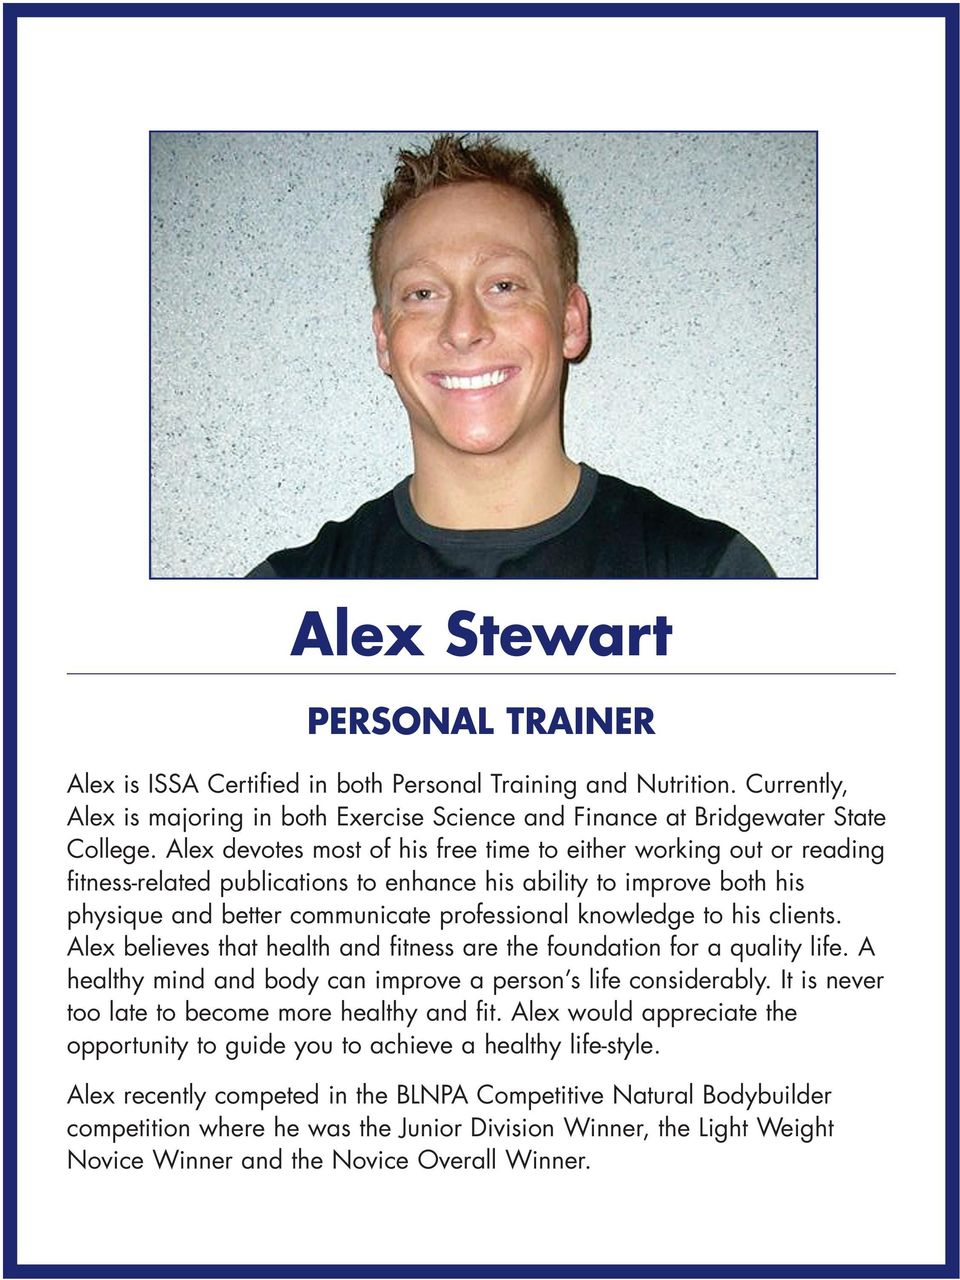 his clients. Alex believes that health and fitness are the foundation for a quality life. A healthy mind and body can improve a person s life considerably.